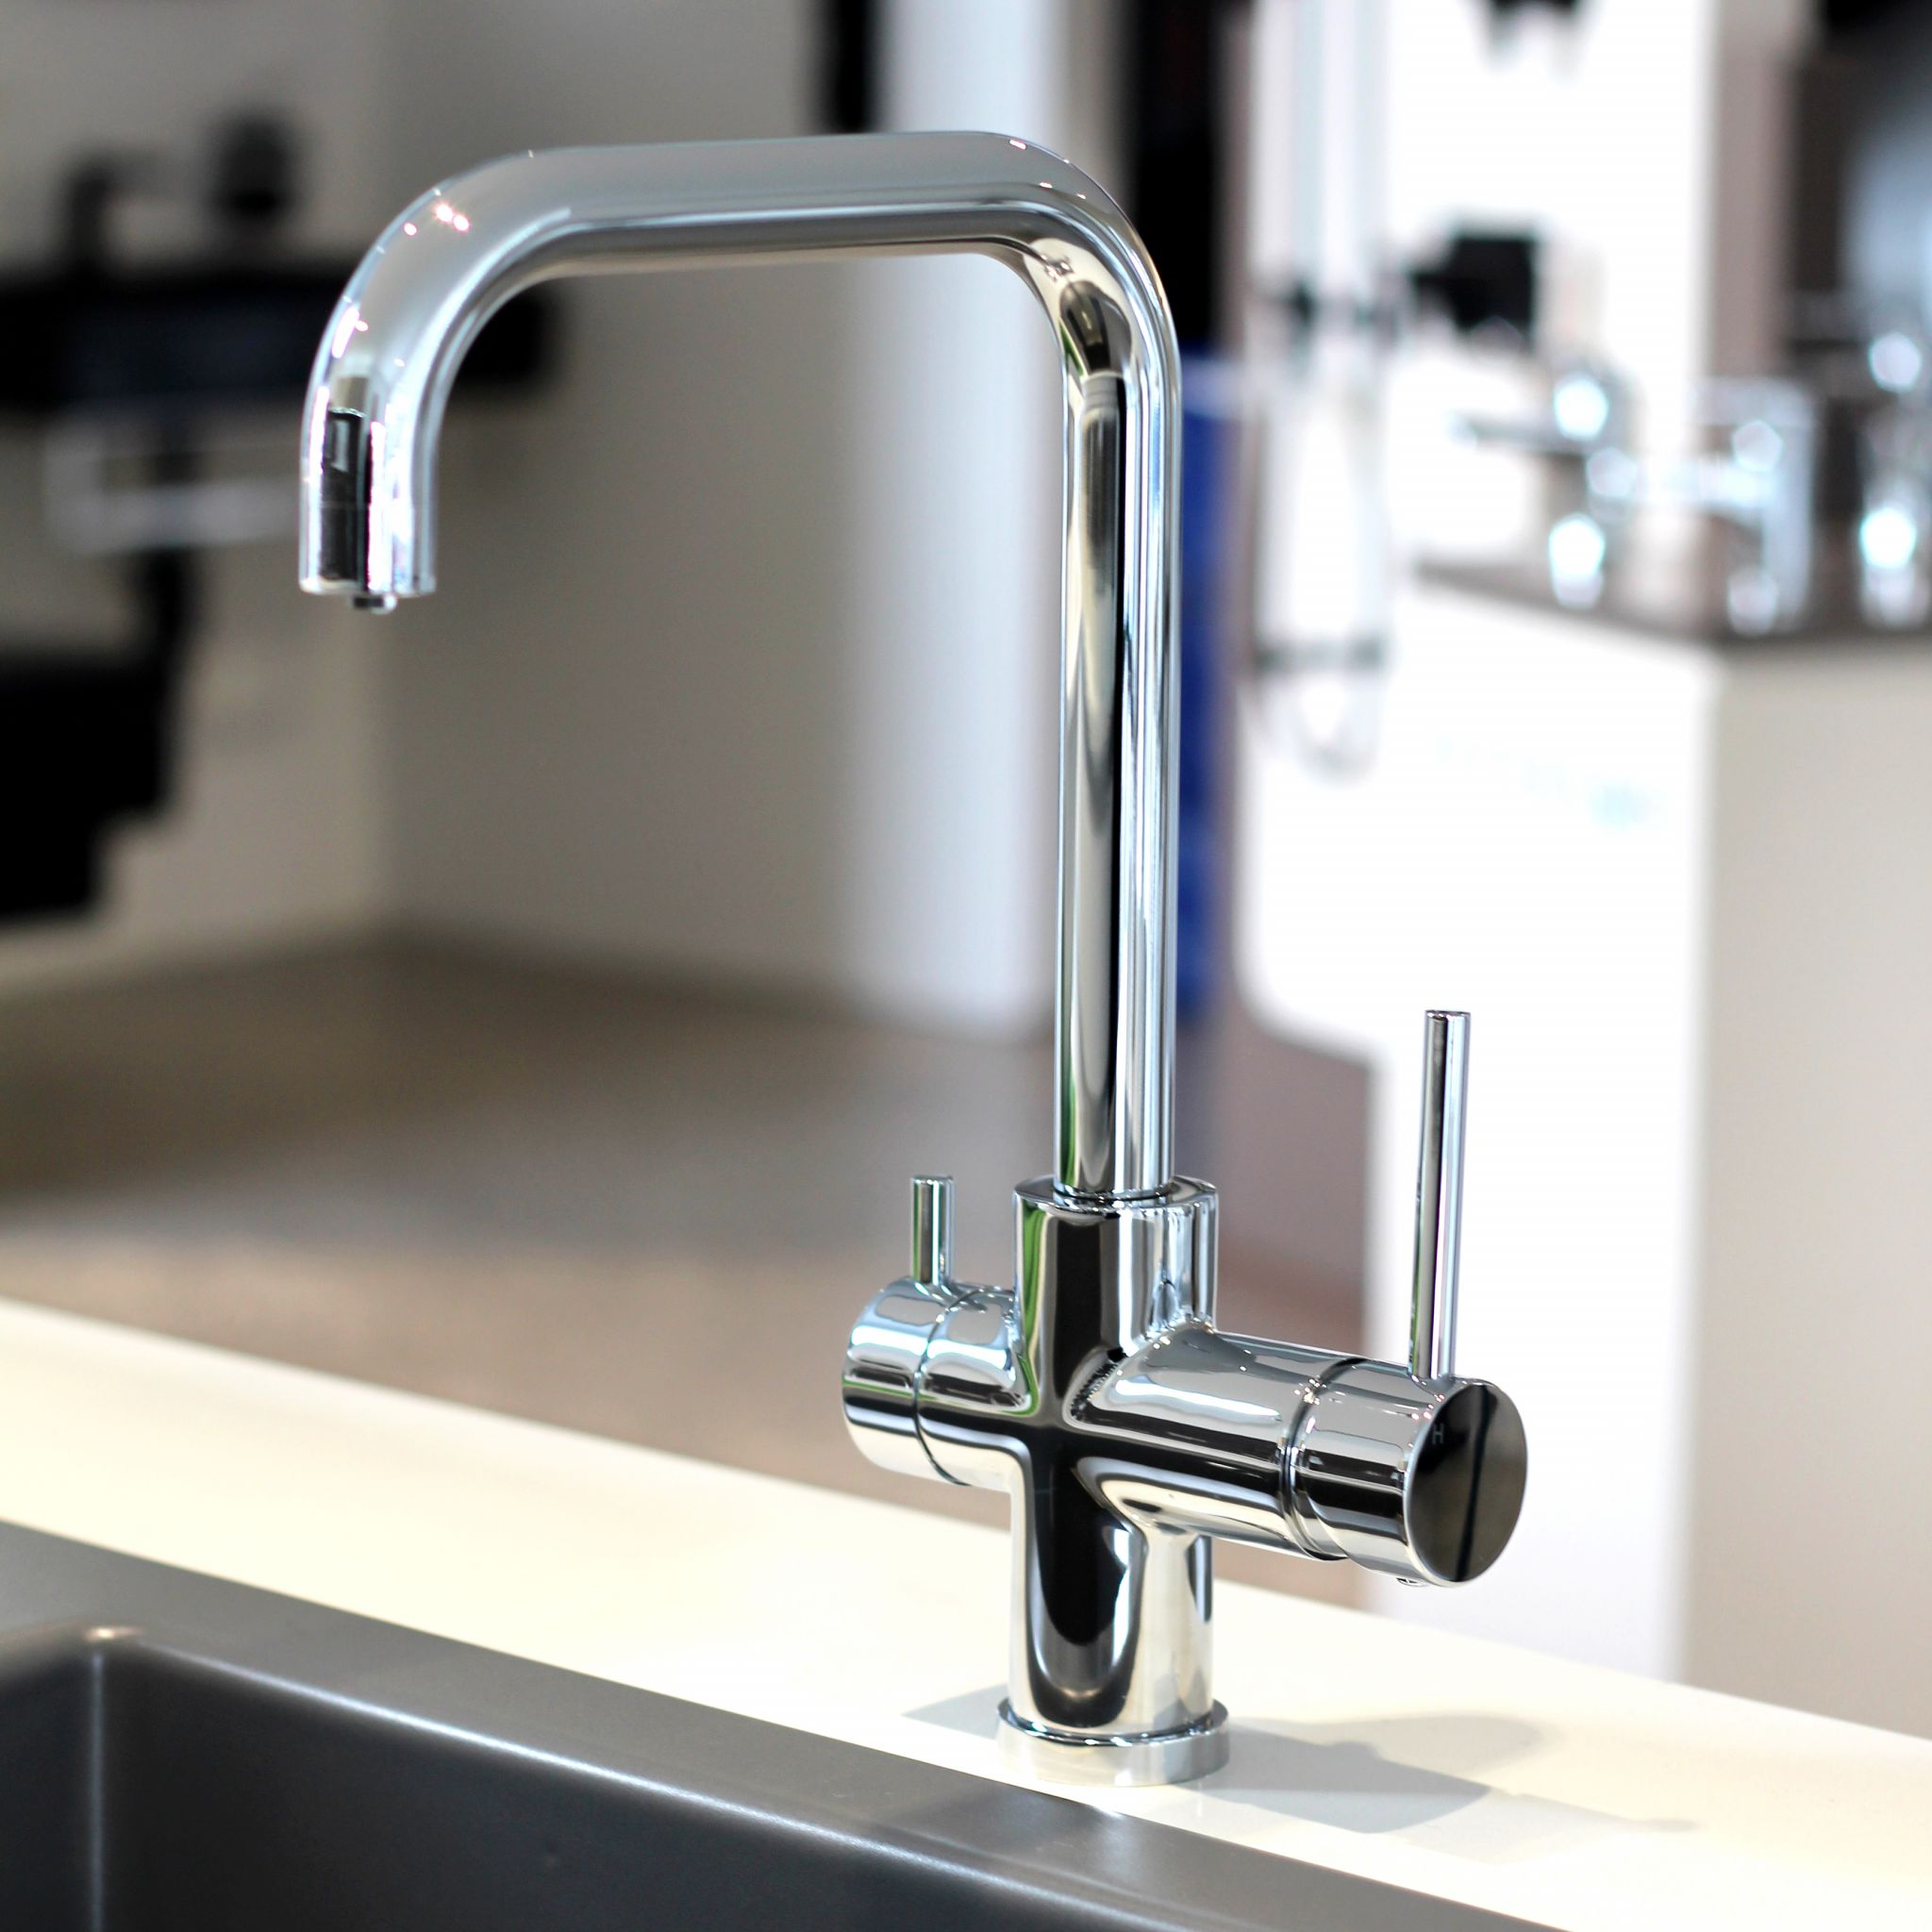 Home - NZ Suppliers of bathroom and kitchen ware, taps, basins ...